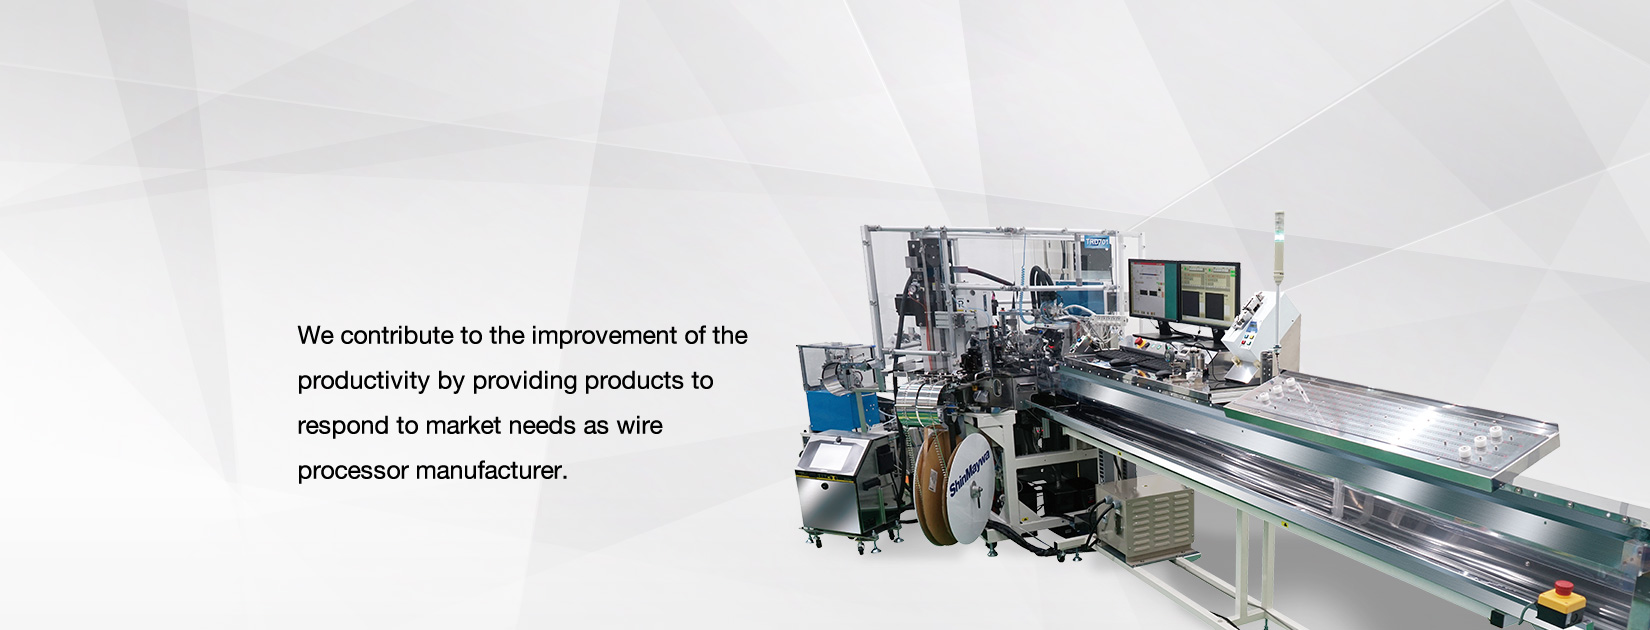 We contribute to the improvement of the productivity by providing products to respond to market needs as wire processor manufacturer.